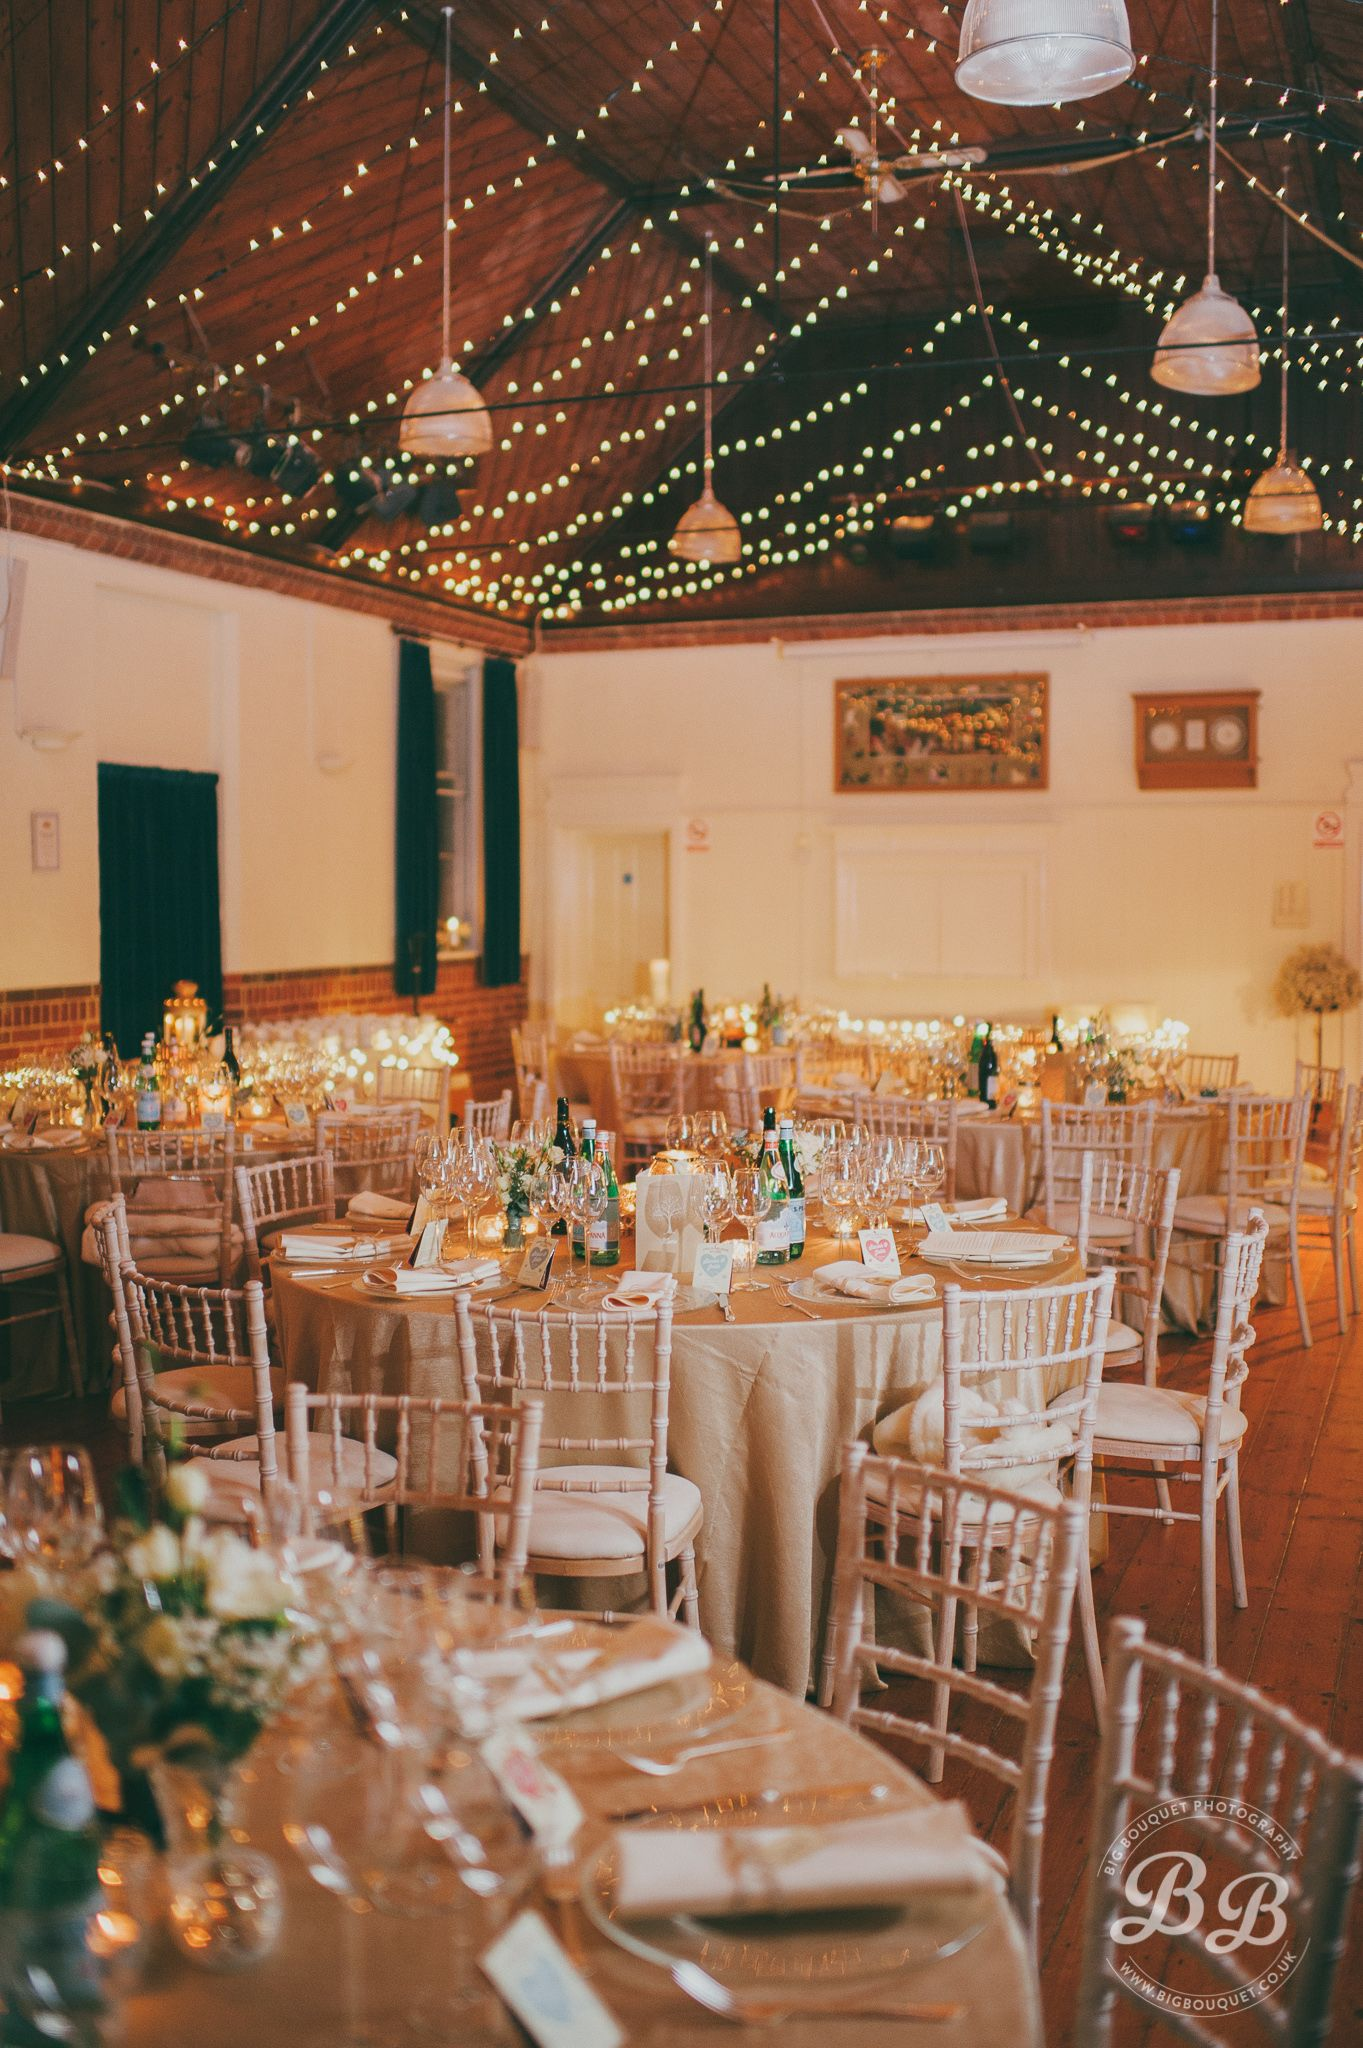 Ideas And Inspiration For Creating A Beautiful Village Hall Fete Styled Wedding Reception Light Ceiling Garlands To Brighten Up